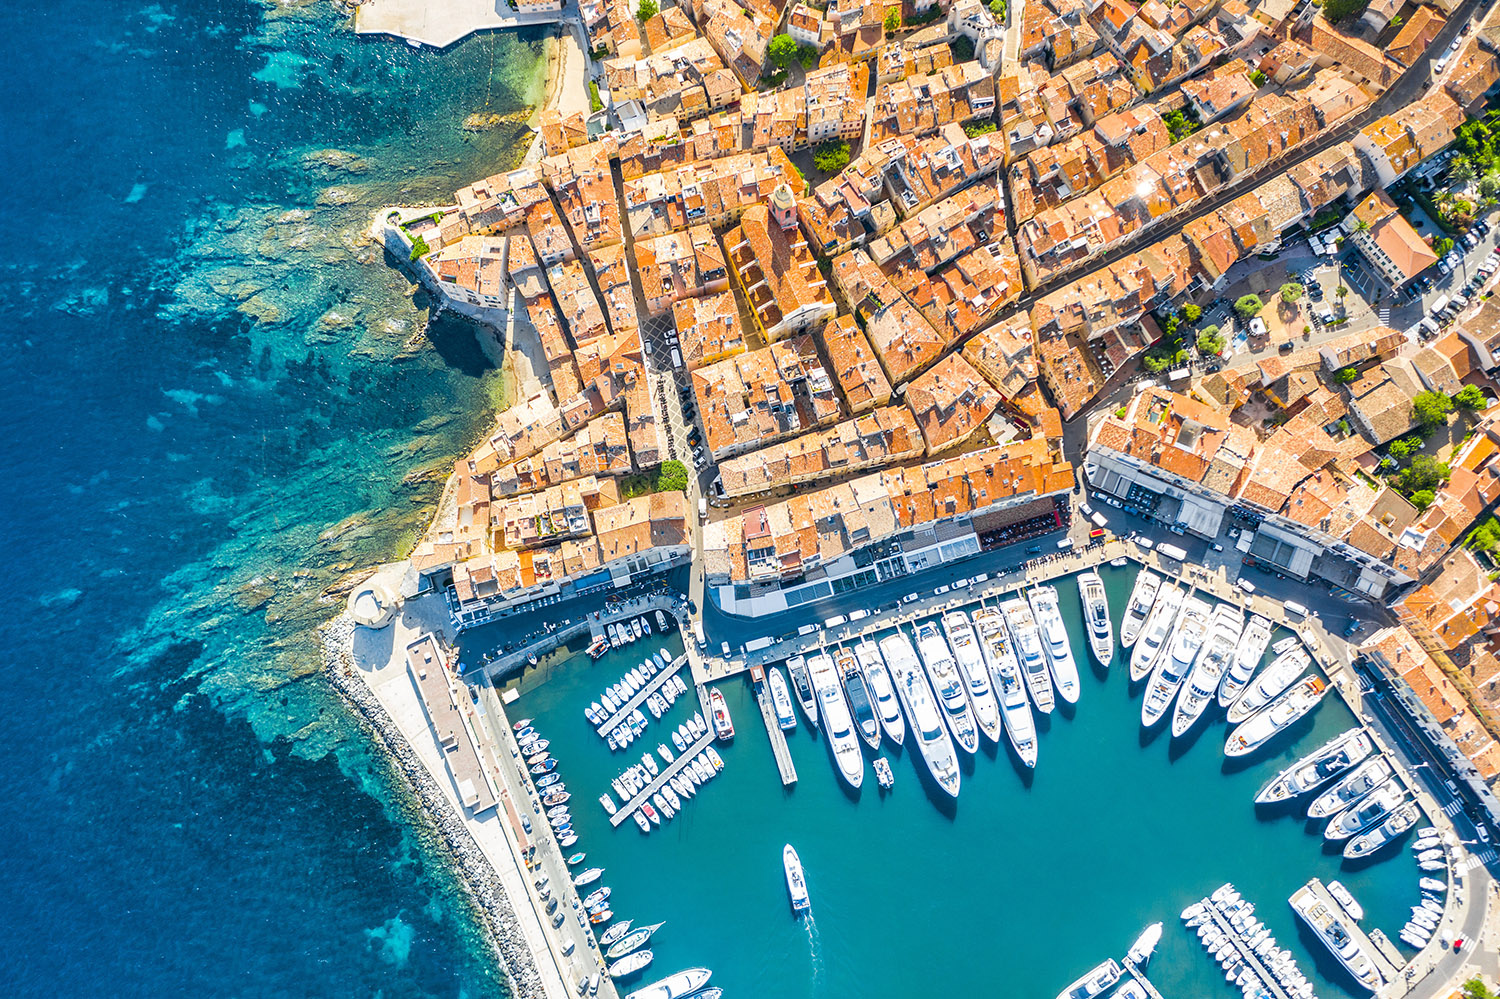 Aerial view of the Port of Saint-Tropez